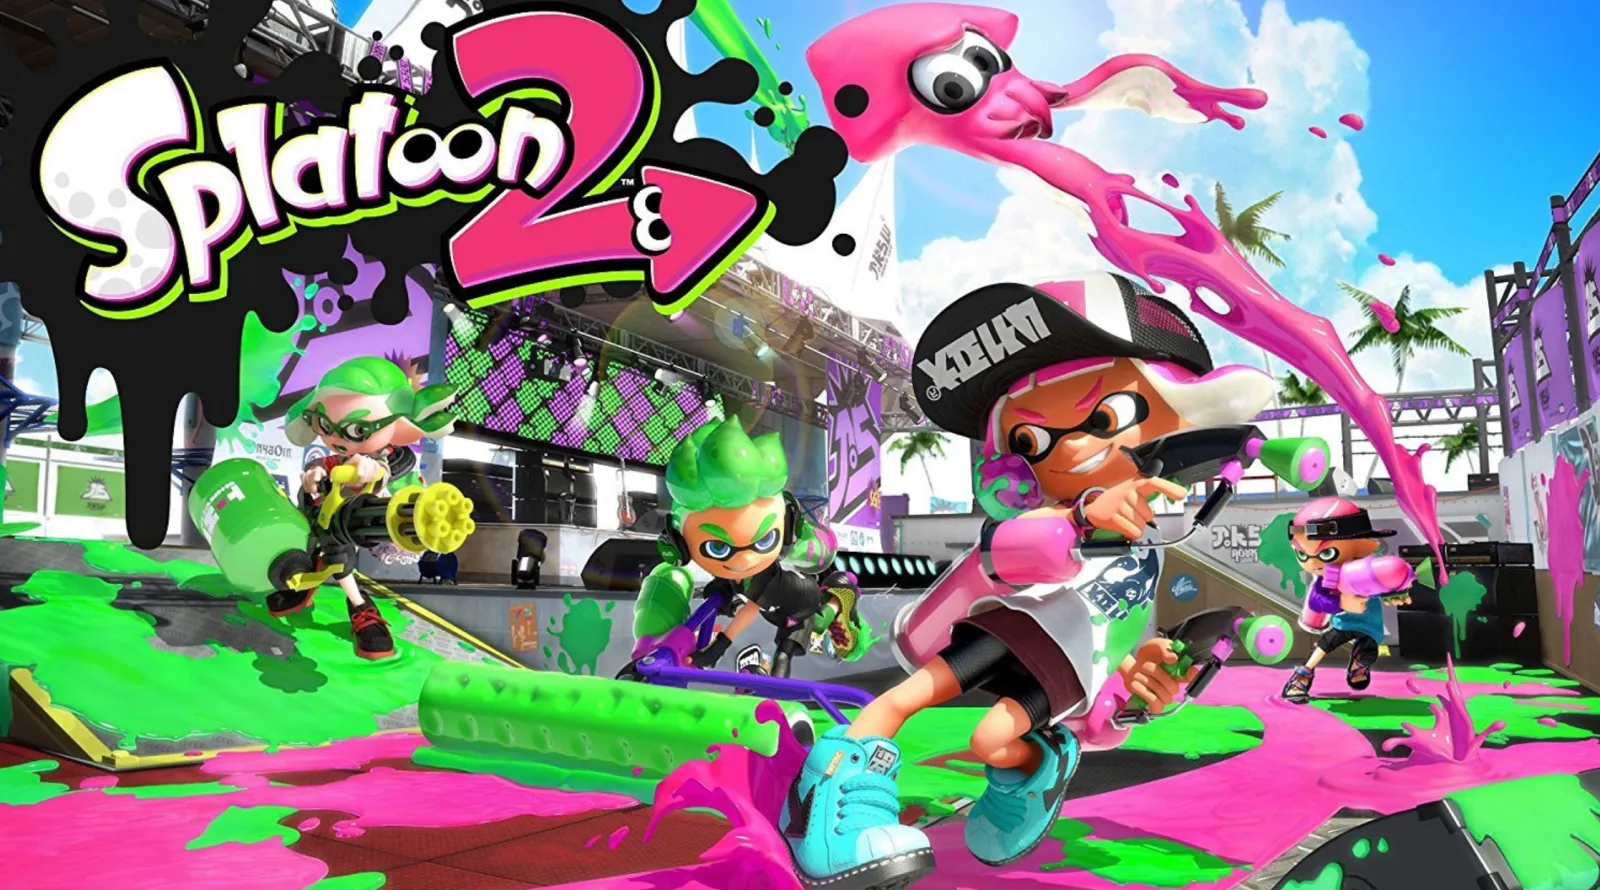 A pink Splatoon Inkling character skids in ink holding an ink gun. Other characters with green ink appear on ramps and ledges in the background. The logo Splatoon 2 is displayed prominently above the characters.